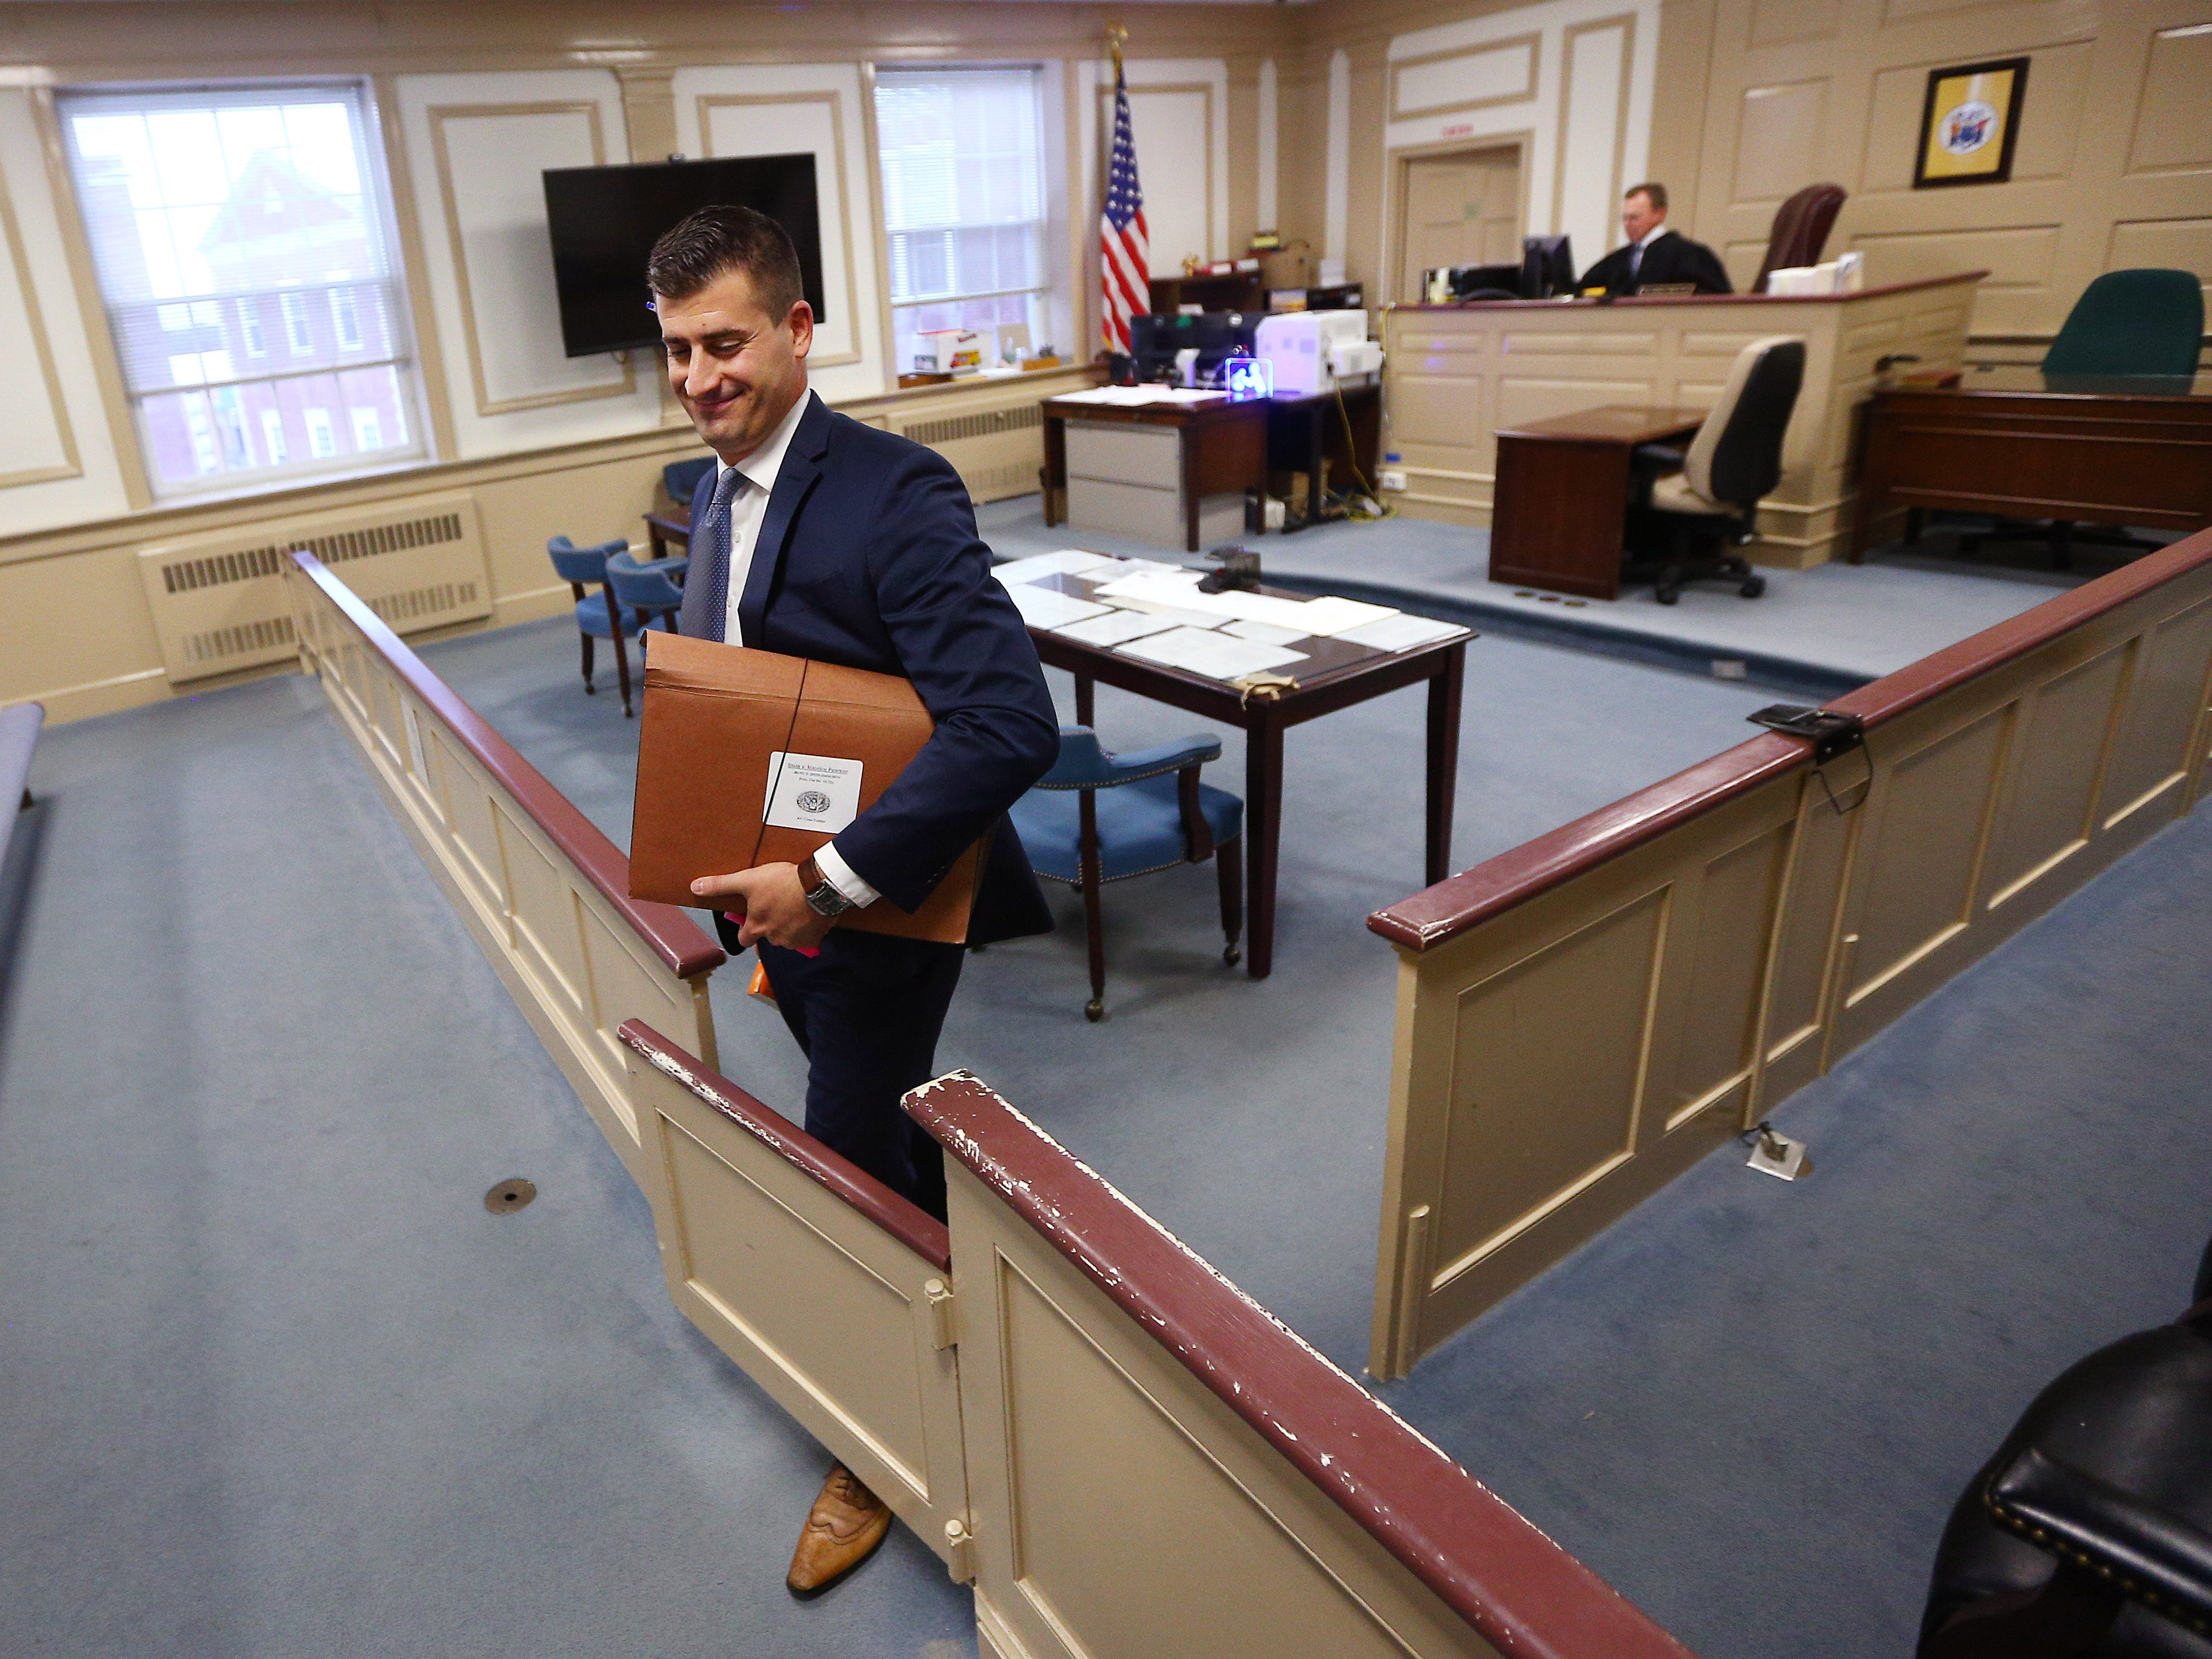 Chief Assistant Prosecutor Matthew Troiano exits the courtroom after the sentencing of Maurice Pearson, who plead guilty to the aggravated manslaughter of his girlfriend's 3-year-old son, Ty'mil Solomon in April 2015 in a Montville motel room. Today was Troiano's final day with the prosecutors office after working there since 2011. November 16, 2018, Morristown, NJ